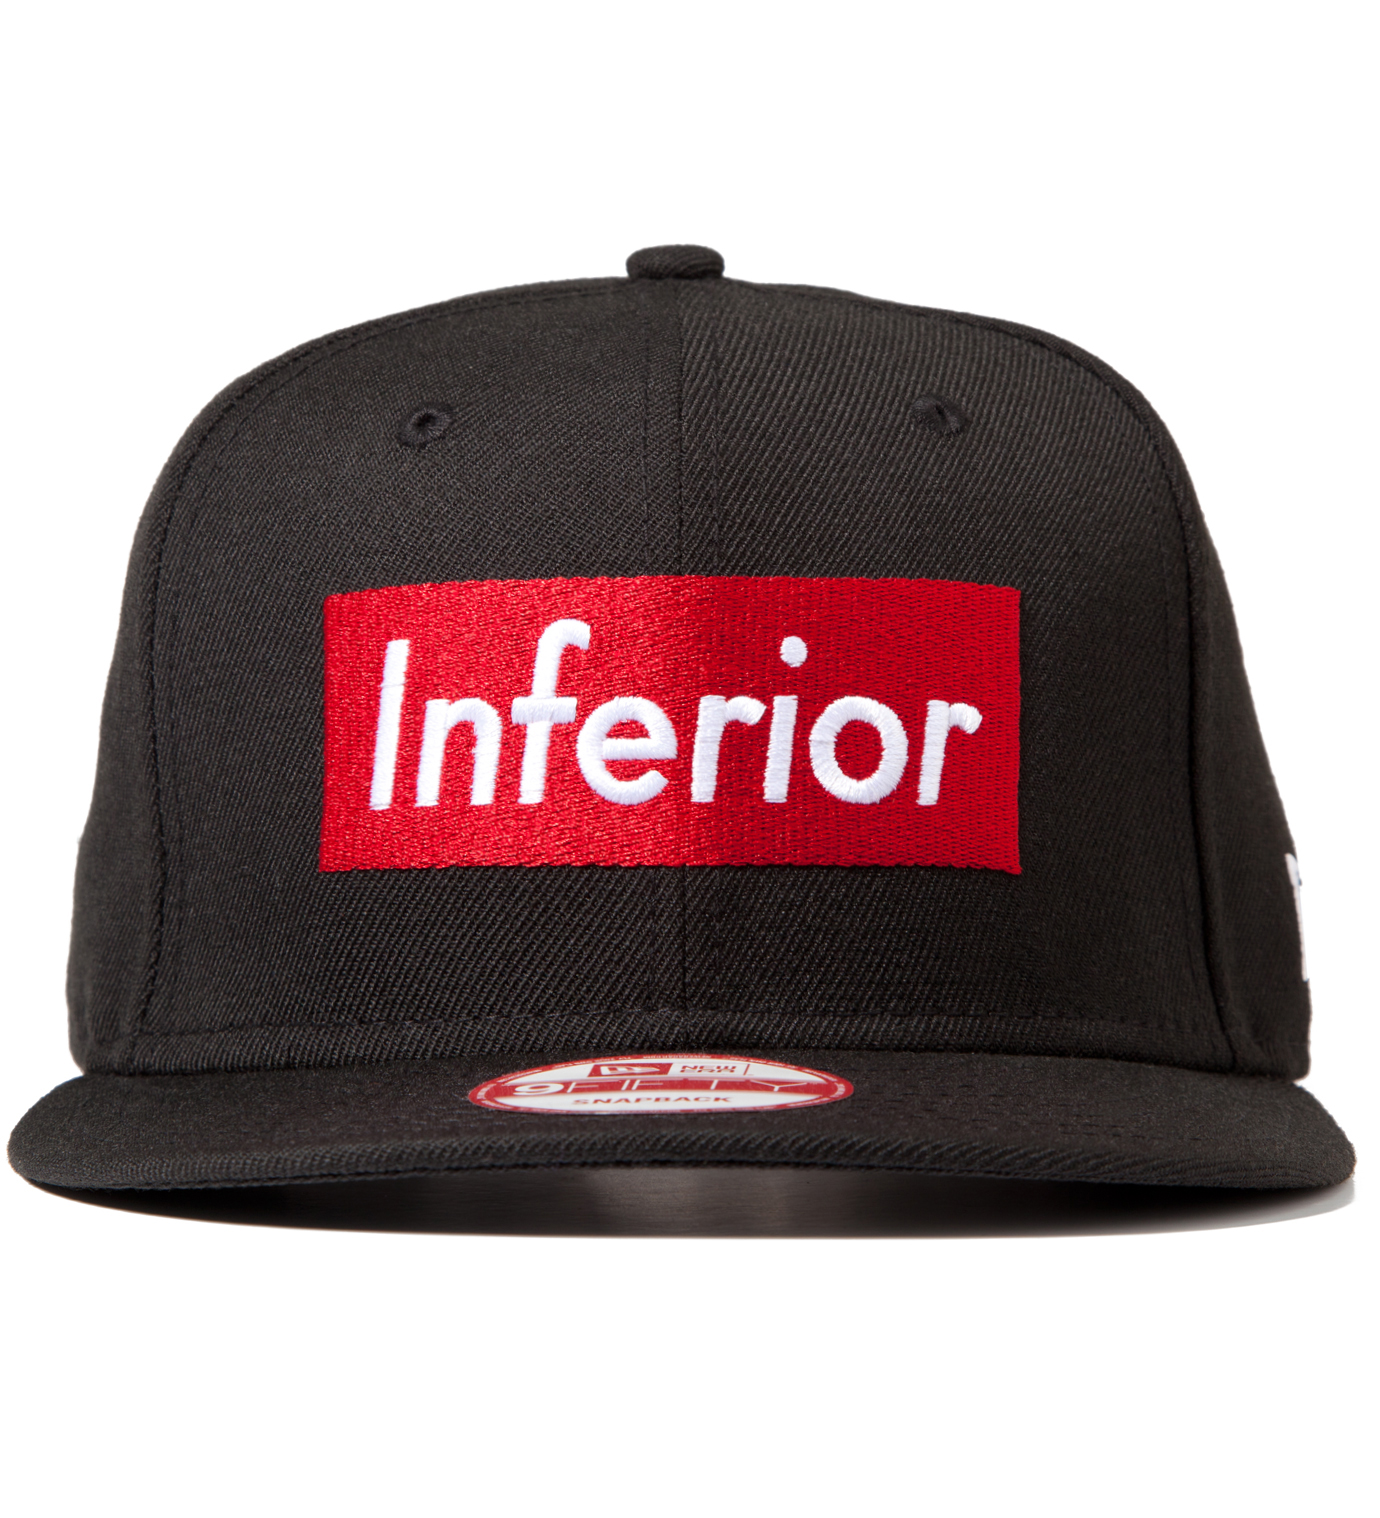 Mark McNairy for Heather Grey Wall Mark McNairy for Heather Grey Wall Black New Era Inferior Snapback Cap